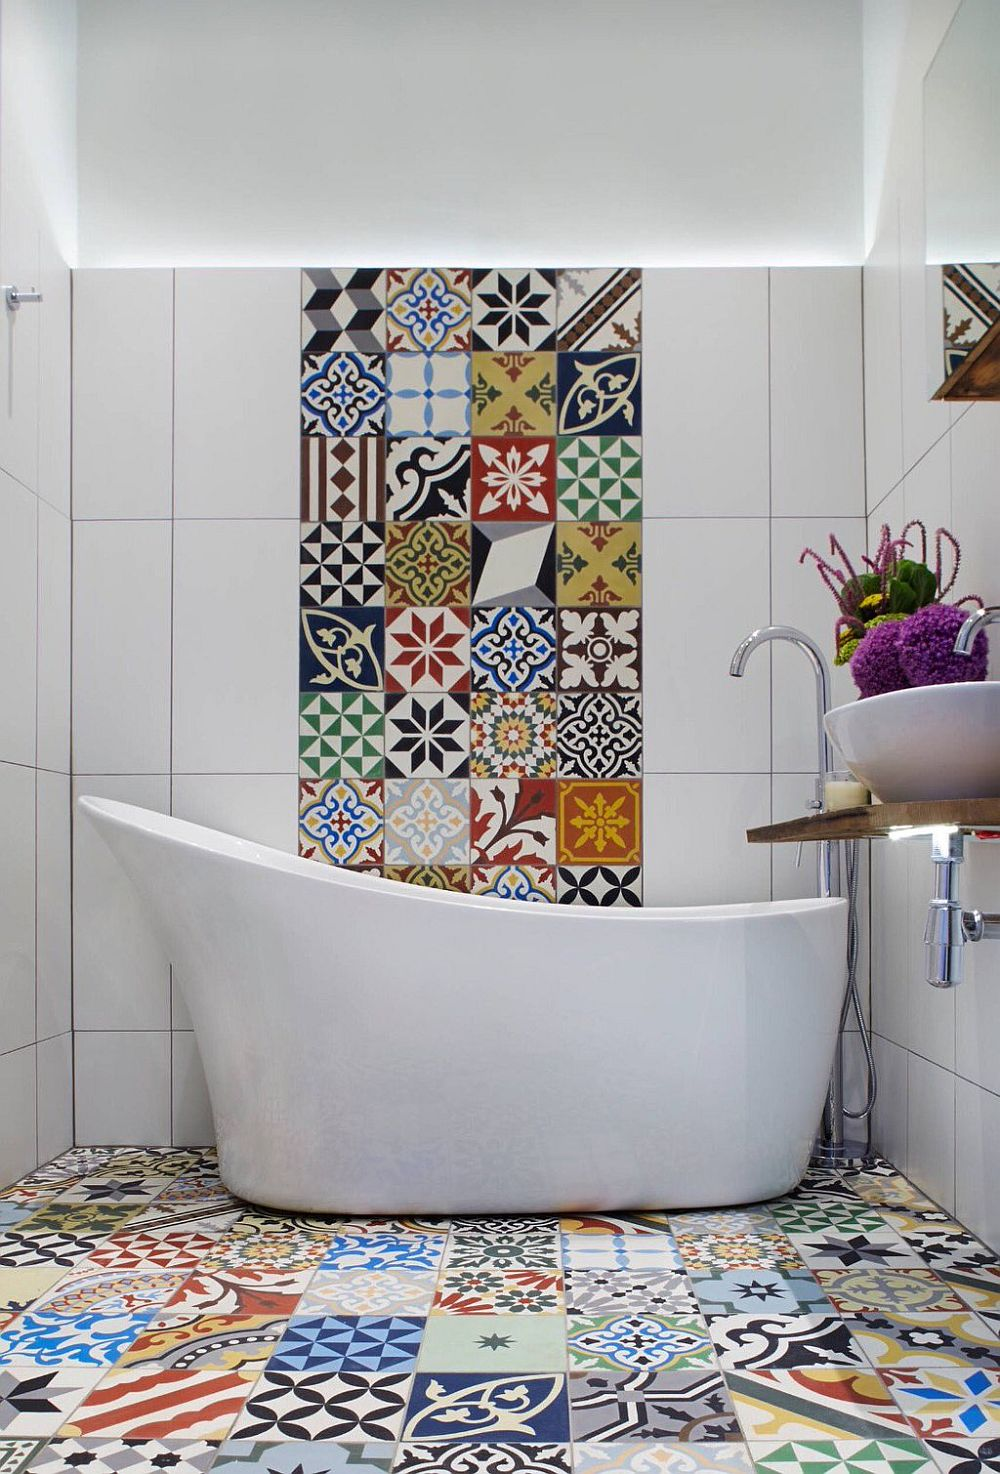 Contemporary Mediterranean bathroom for those who love patchwork tiles An Audacious and Trendy Mix: 25 Creative Patchwork Tile Ideas